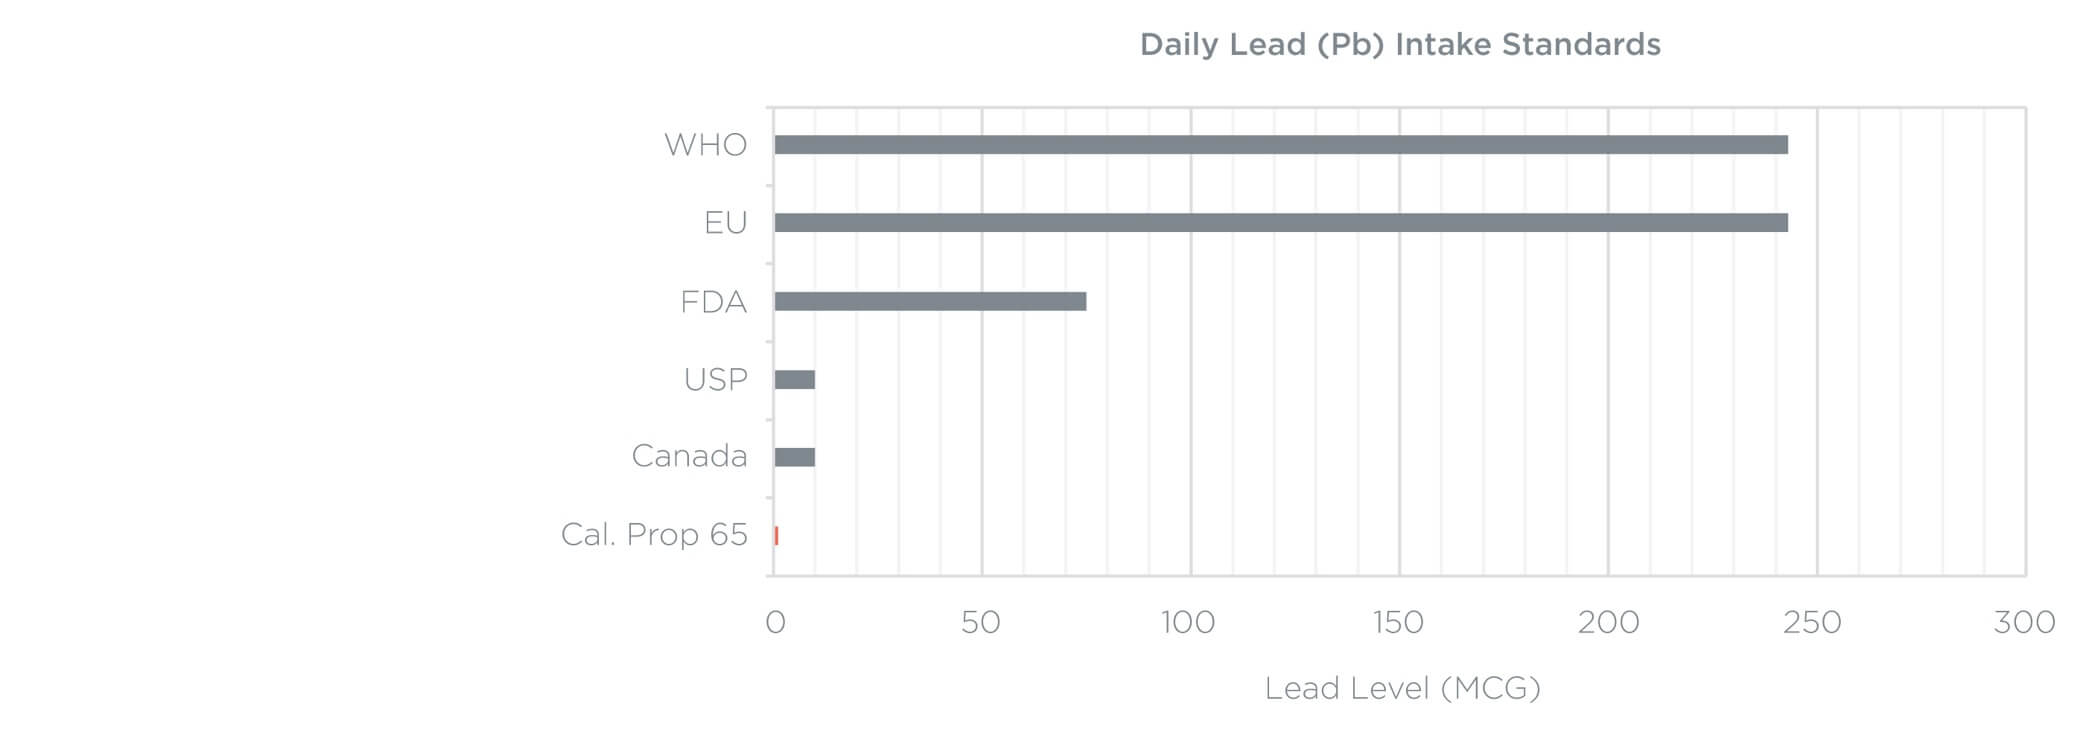 Daily Lead Intake Standards